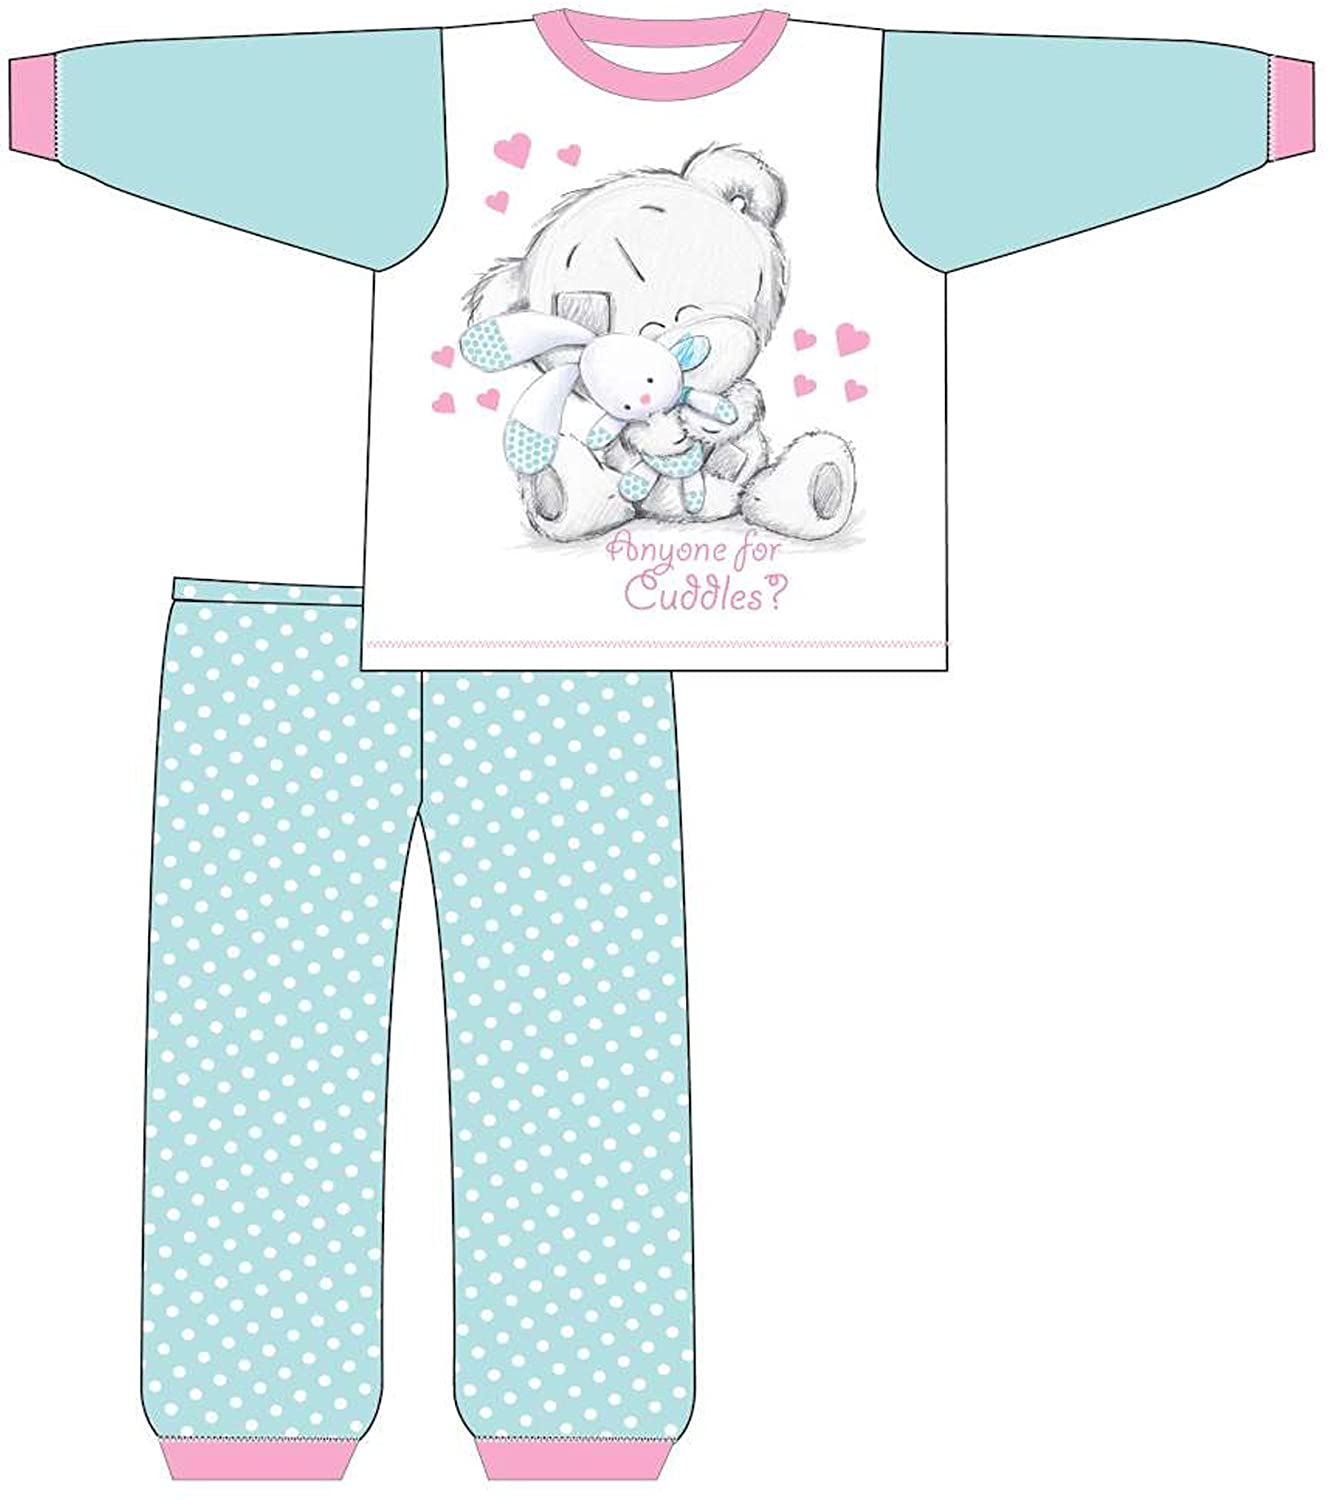 Baby Toddler Girls Tiny Tatty Teddy Anyone For Cuddles Pyjamas 6 Months to 24 Months 27517